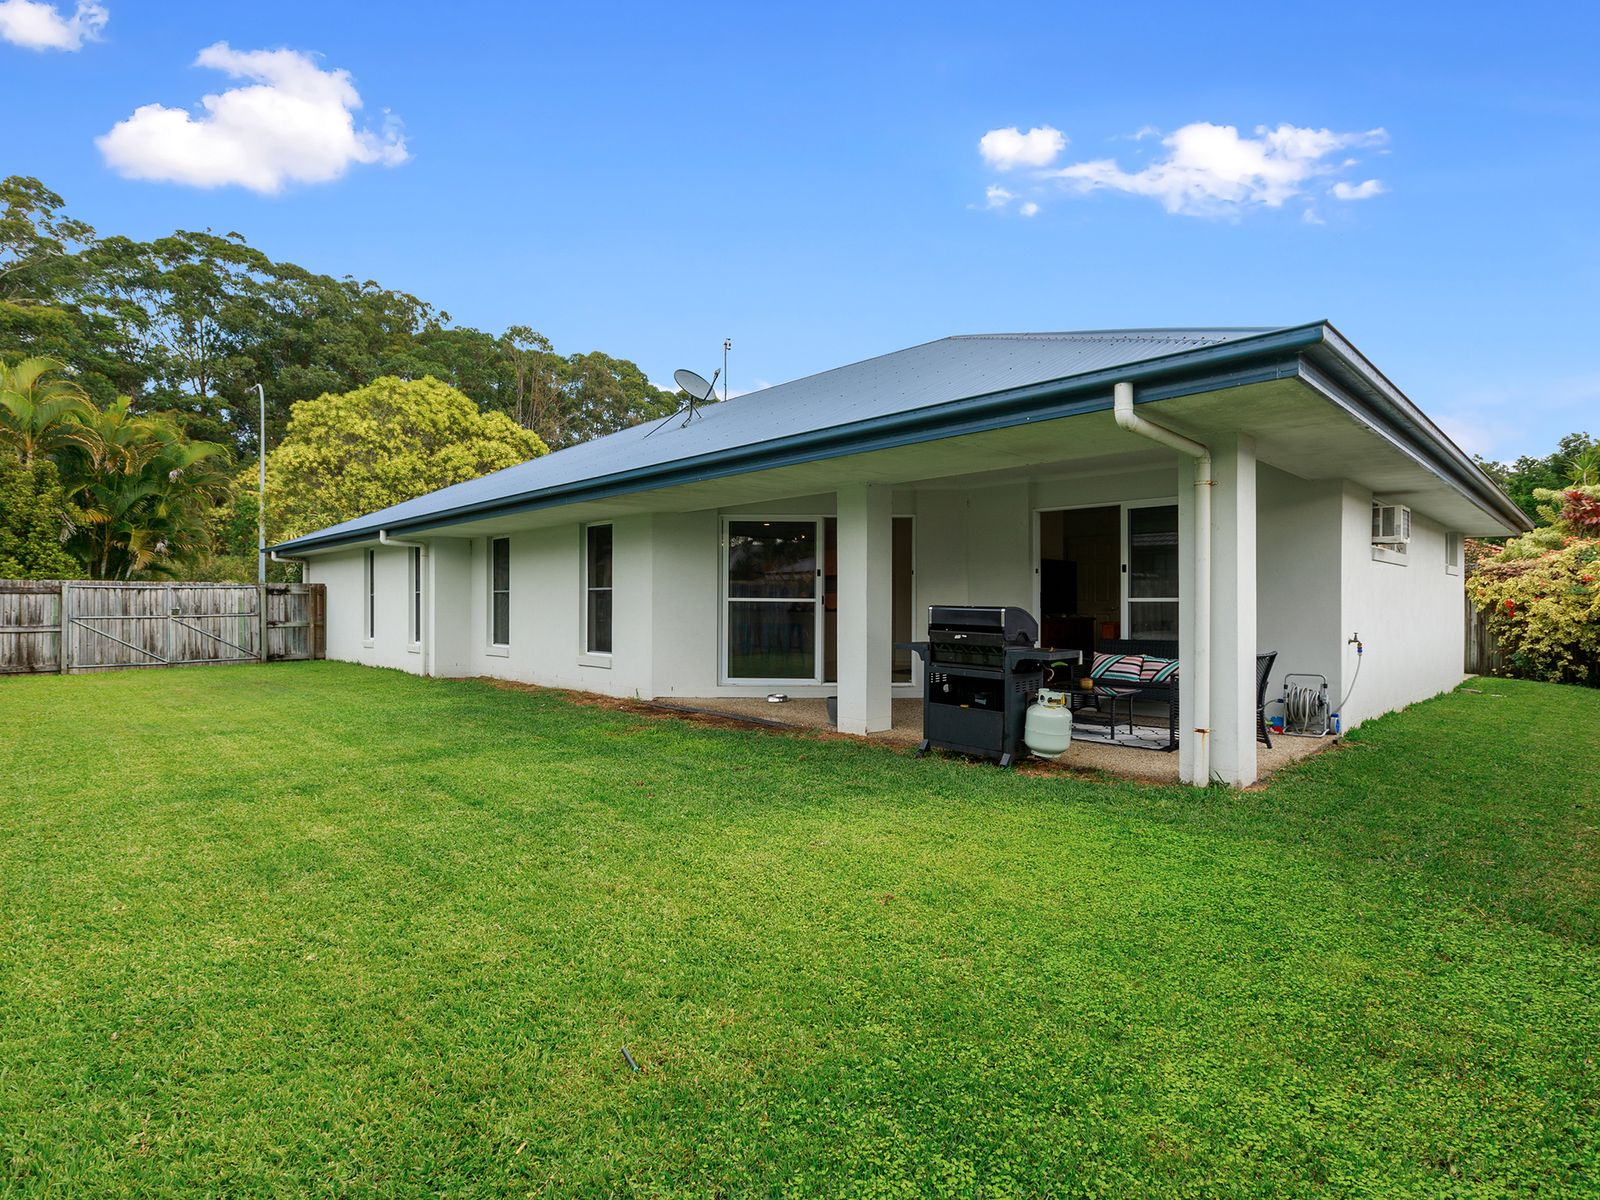 221 University Way, Sippy Downs, QLD 4556